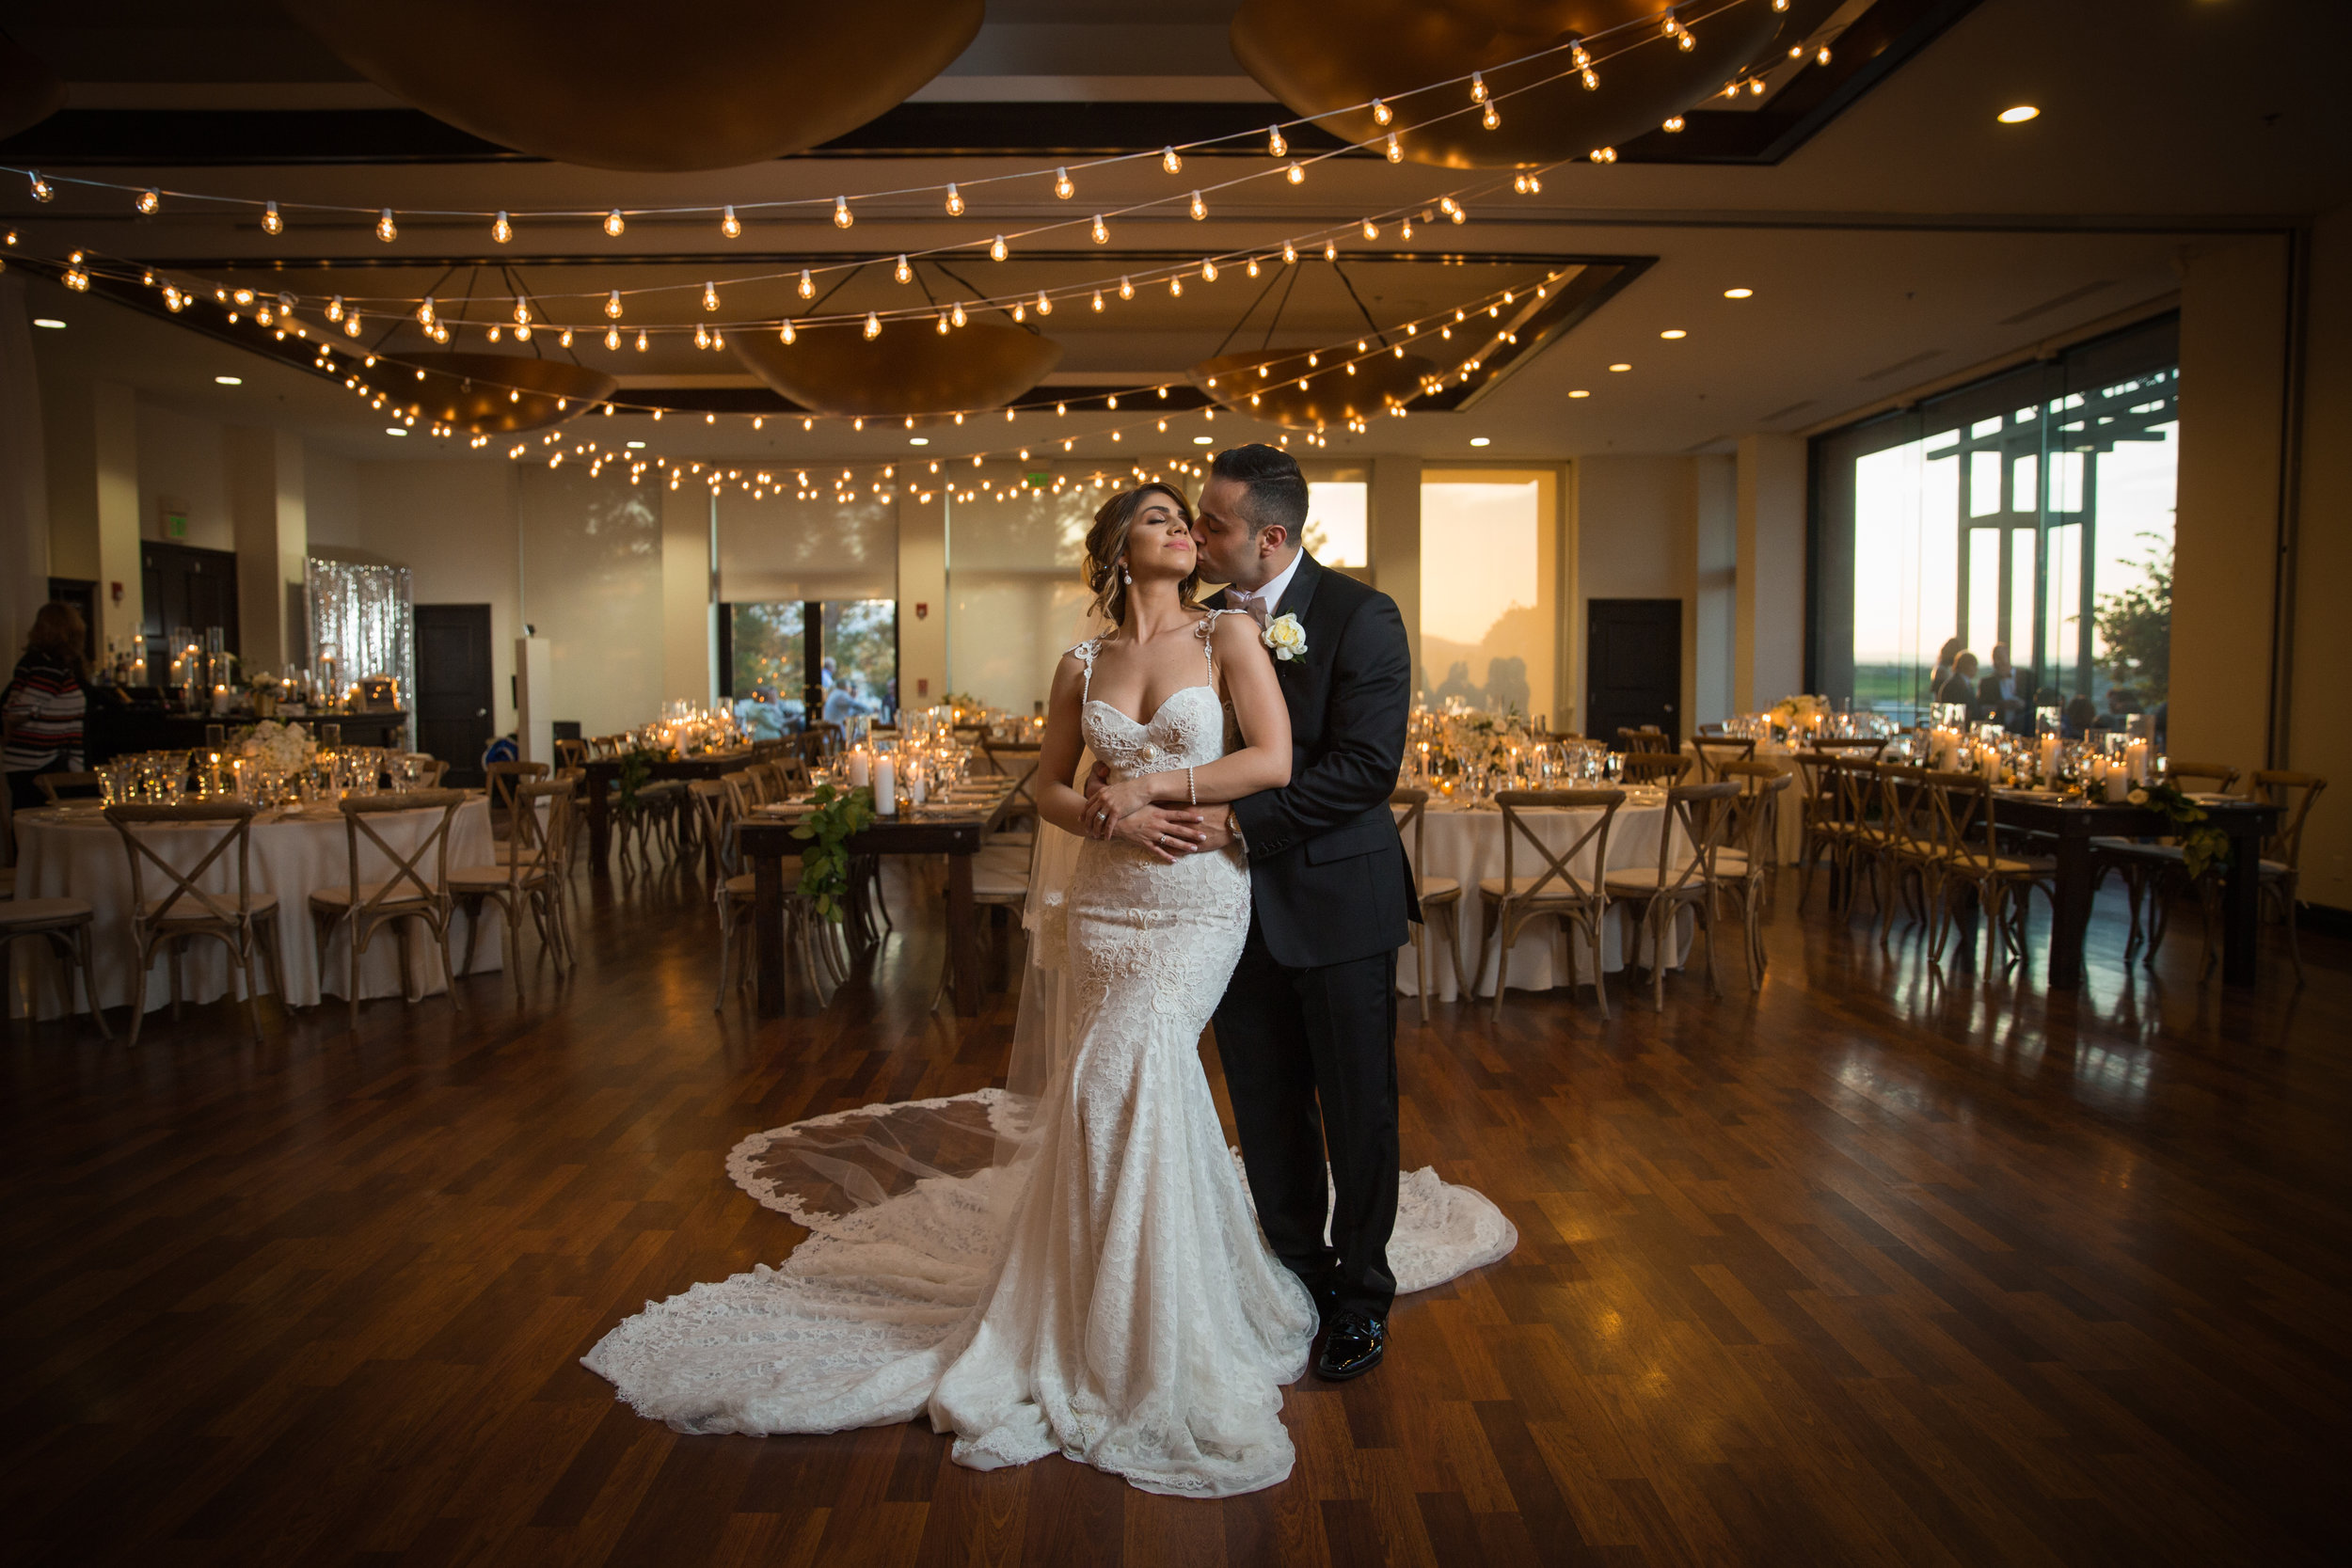 Bride and groom in rustic glam wedding reception with bistro lighting. Luxury Destination Wedding Planning and Event Design by  Andrea Eppolito Events  · Photos by  Stephen Salazar  · Flowers by  Naakiti Floral  ·  Rentals by RSVP · Lighting by  LED Unplugged   · Venue  Paiute Golf Course .  Dress by  Berta  · Shoes by  Jimmy Choo